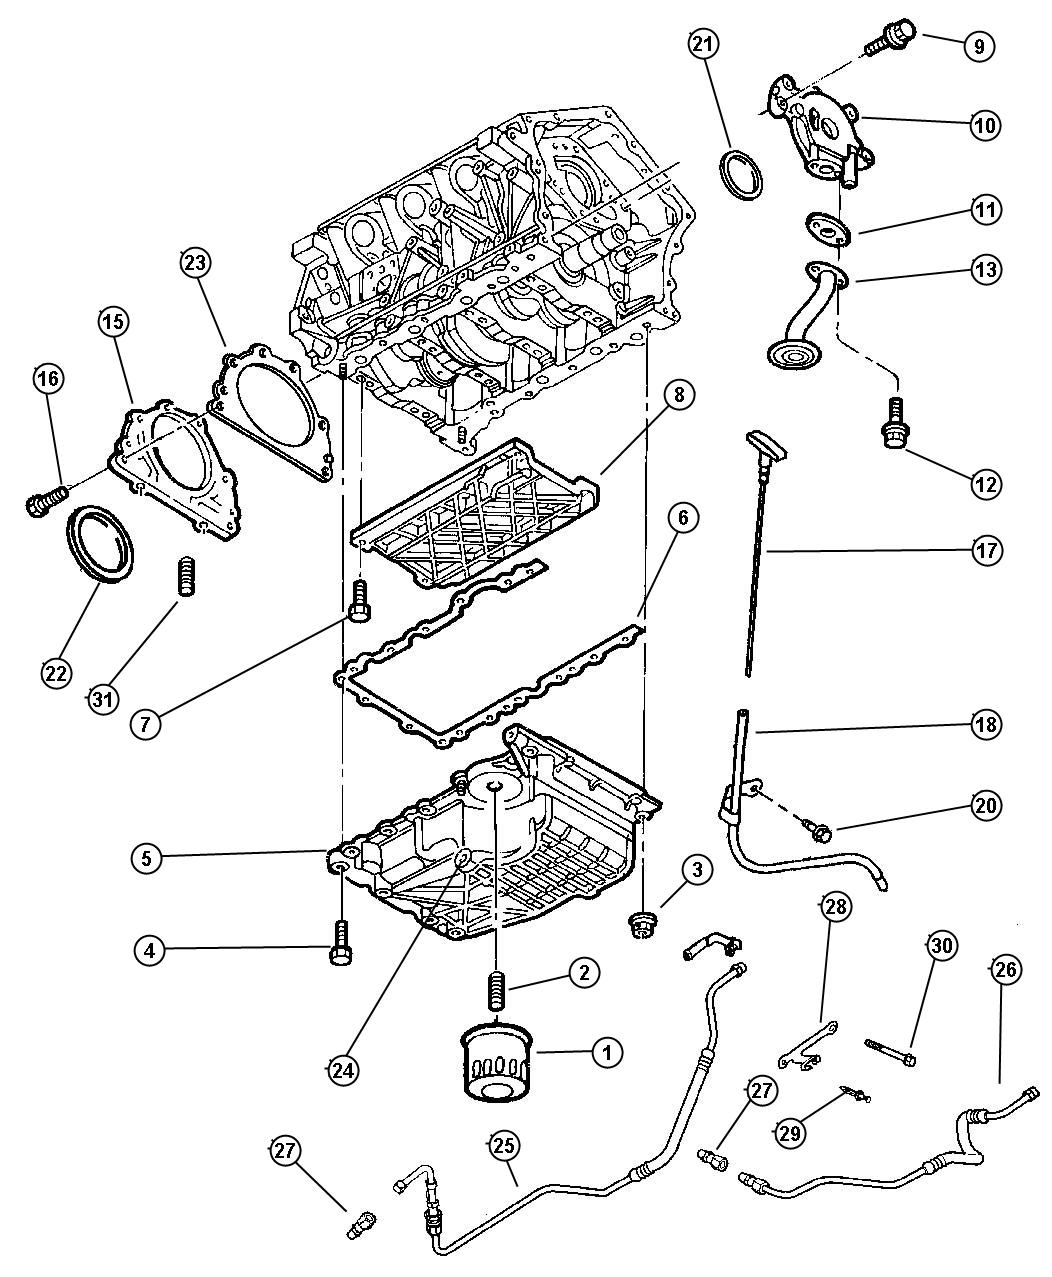 hight resolution of dodge 2 7 engine diagram 2carpros questions get free